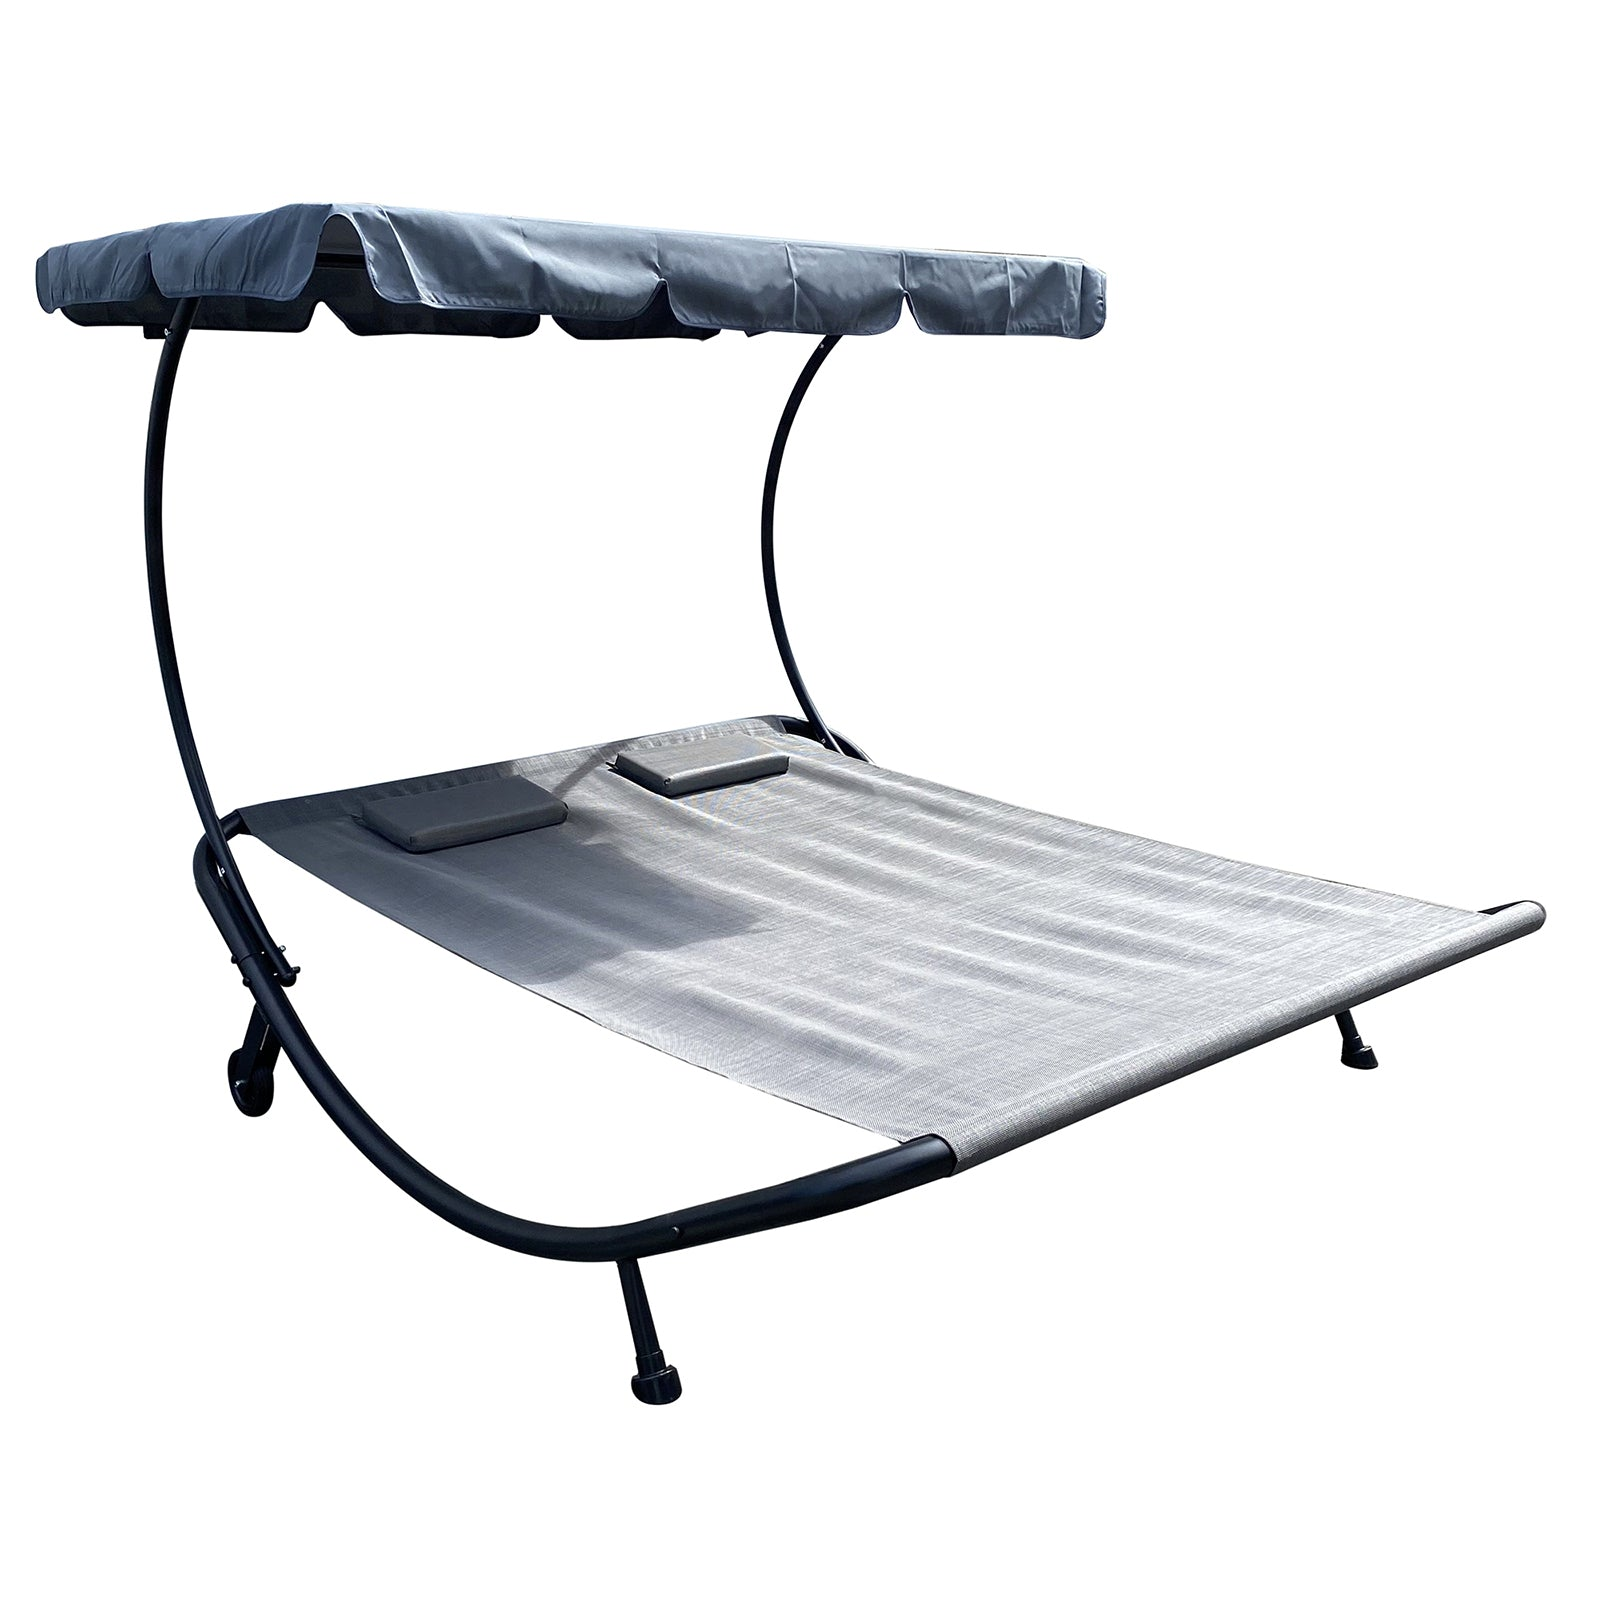 Outdoor Portable Double Chaise Lounge Hammock Bed With Adjustable Canopy and Headrest Pillow for Sun Room, Garden, Courtyard, Poolside,Beach, Grey